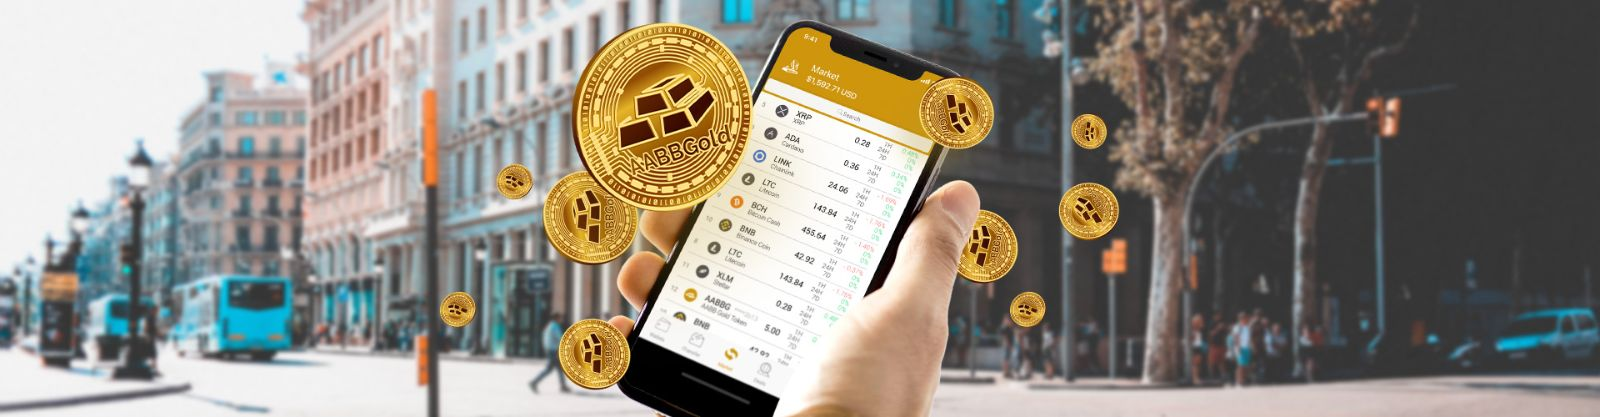 AABB Cryptocurrency Wallet